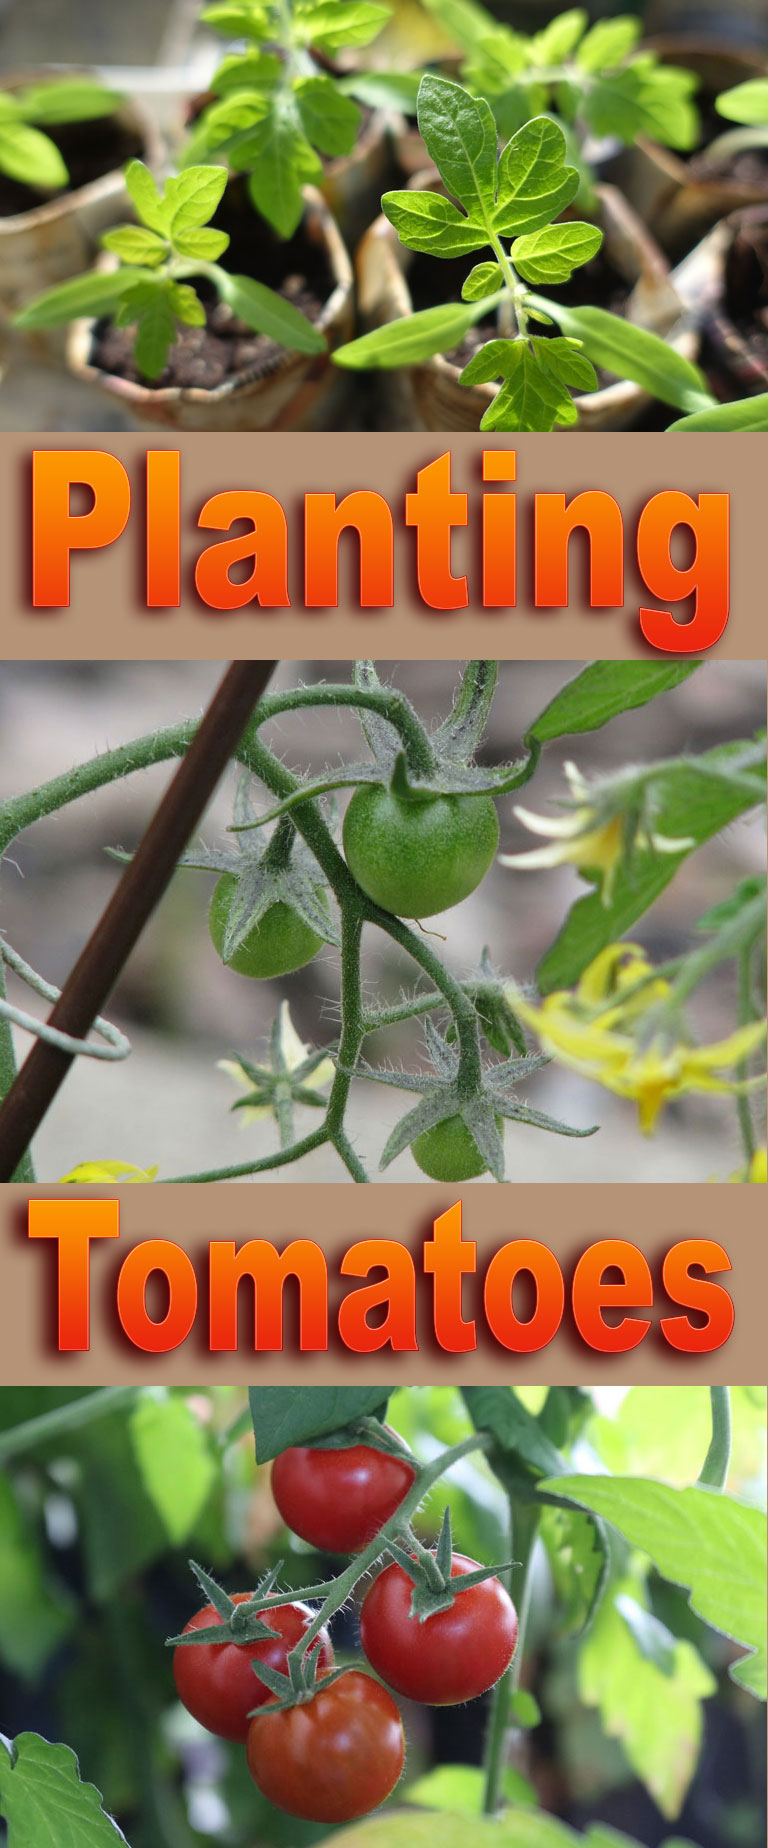 How to Planting Tomatoes